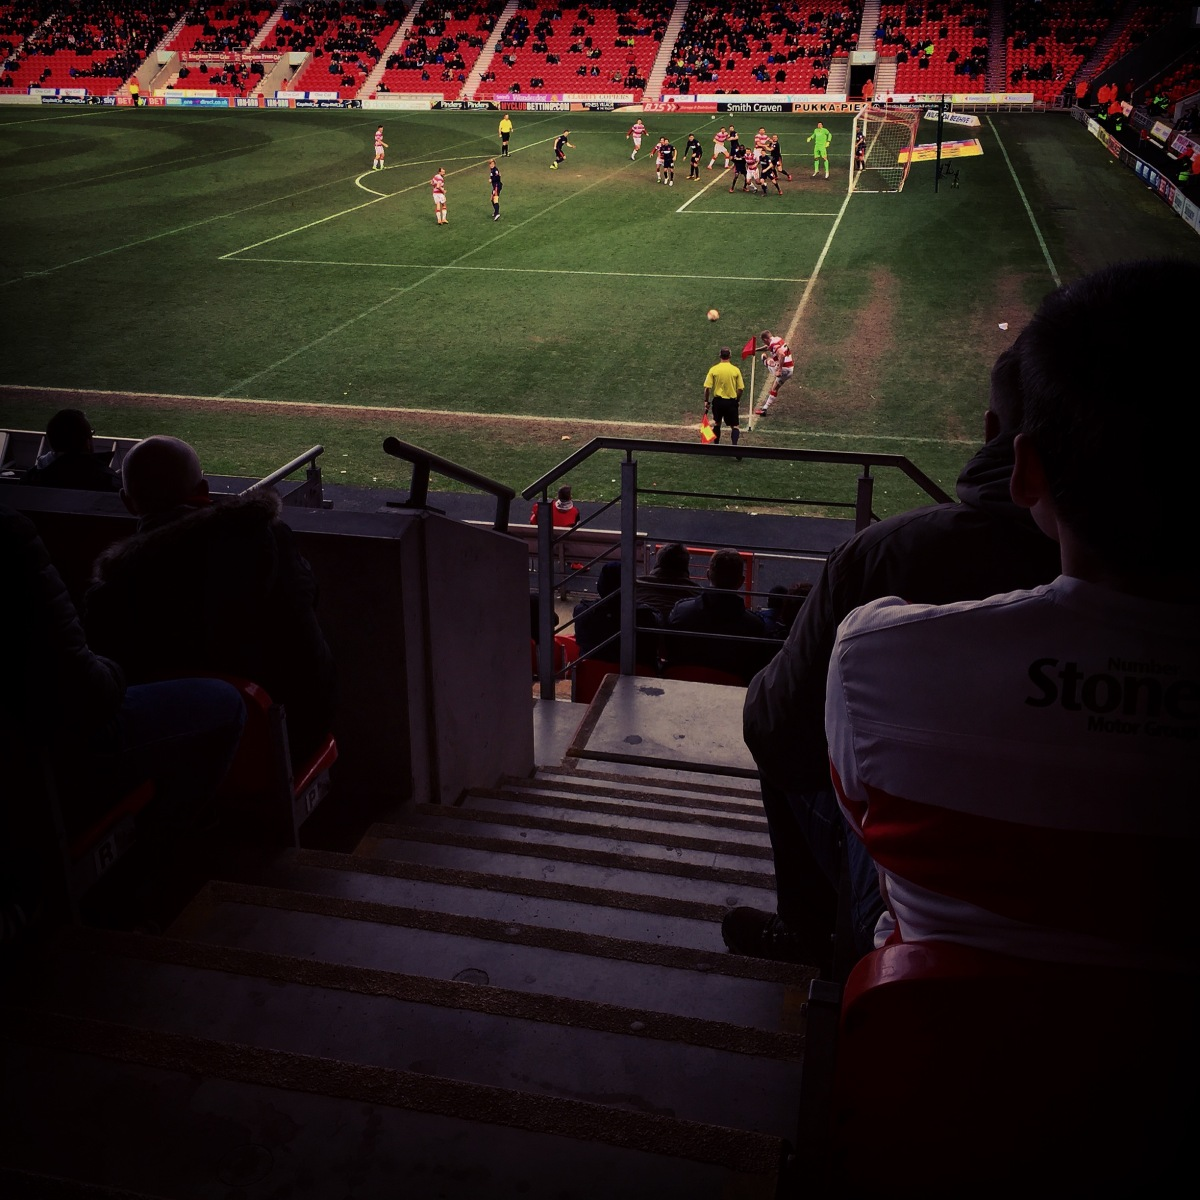 Doncaster Rovers 2-1 Portsmouth: 250 word match report